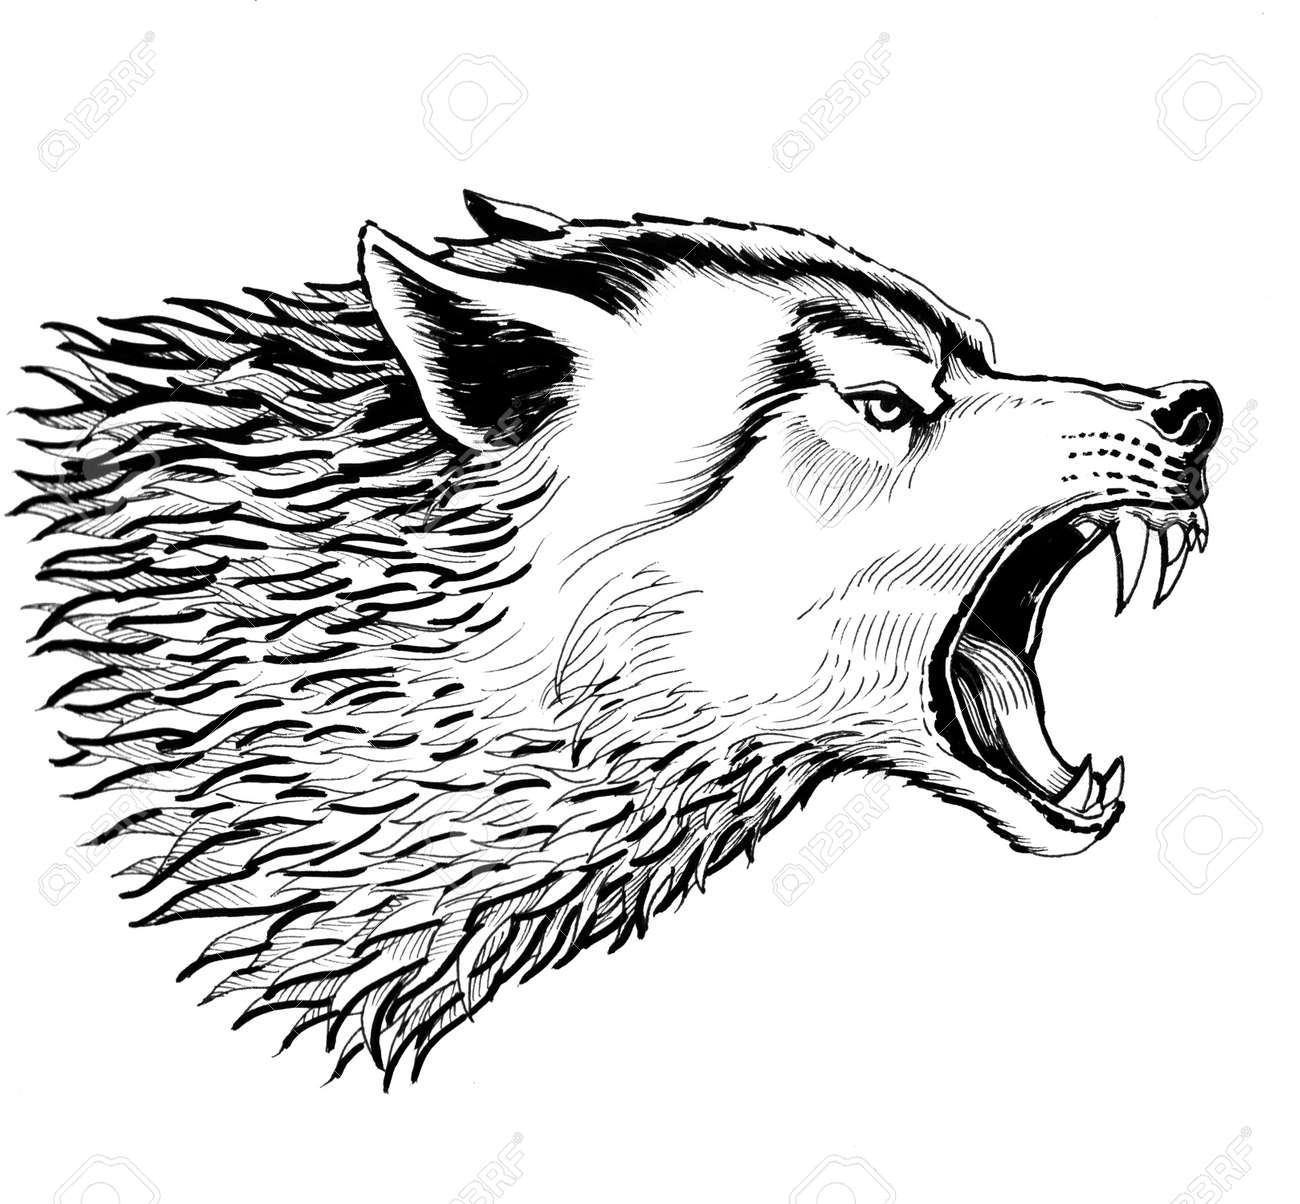 ea7cd1c1b Angry Wolf. Black And White Ink Drawing Stock Photo, Picture And ...